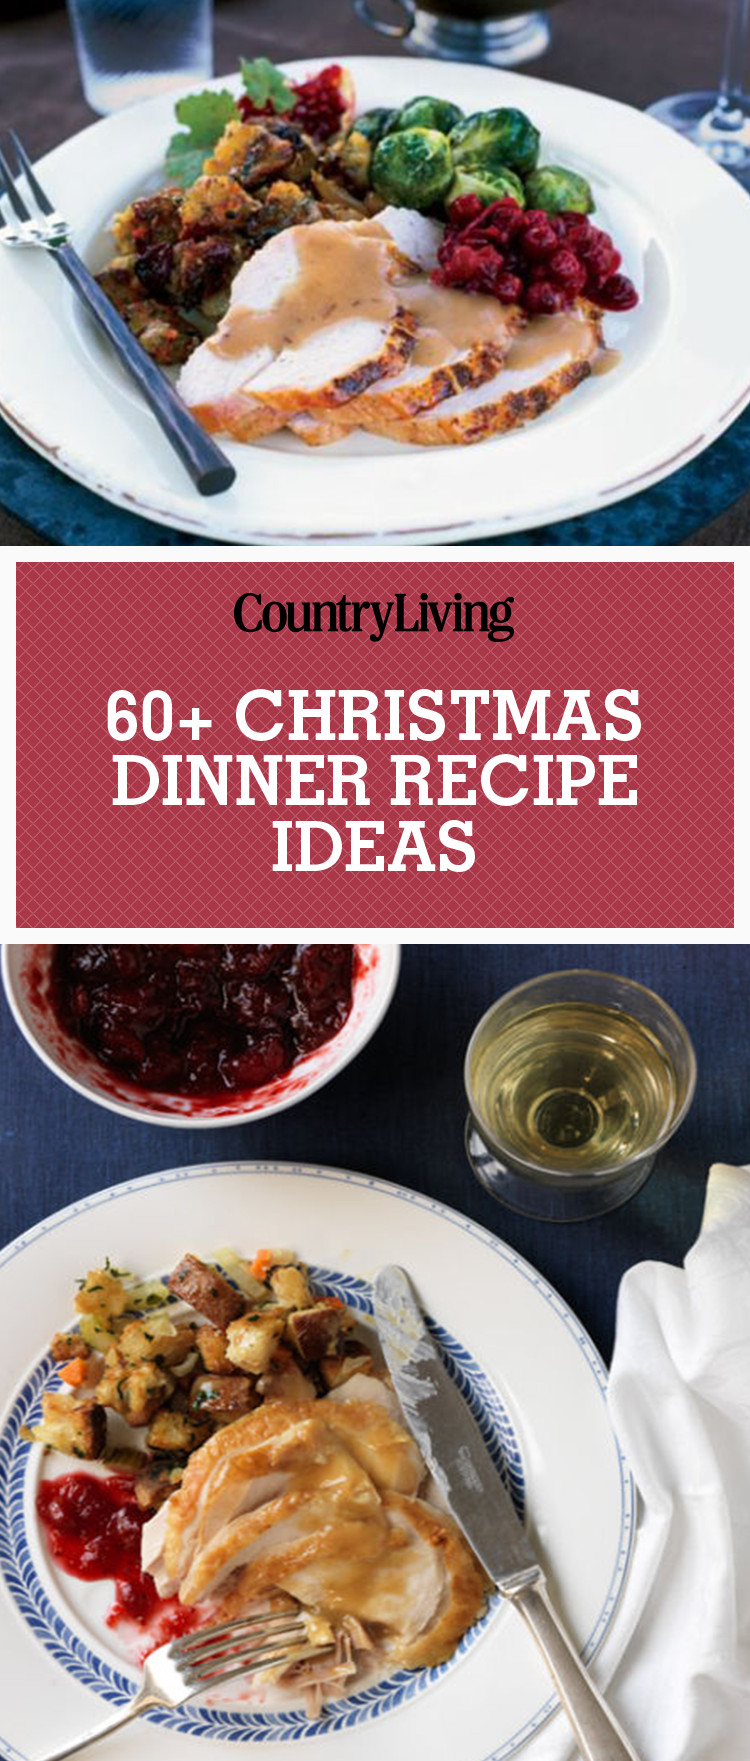 Easy Christmas Dinners Recipes  70 Easy Christmas Dinner Ideas Best Holiday Meal Recipes